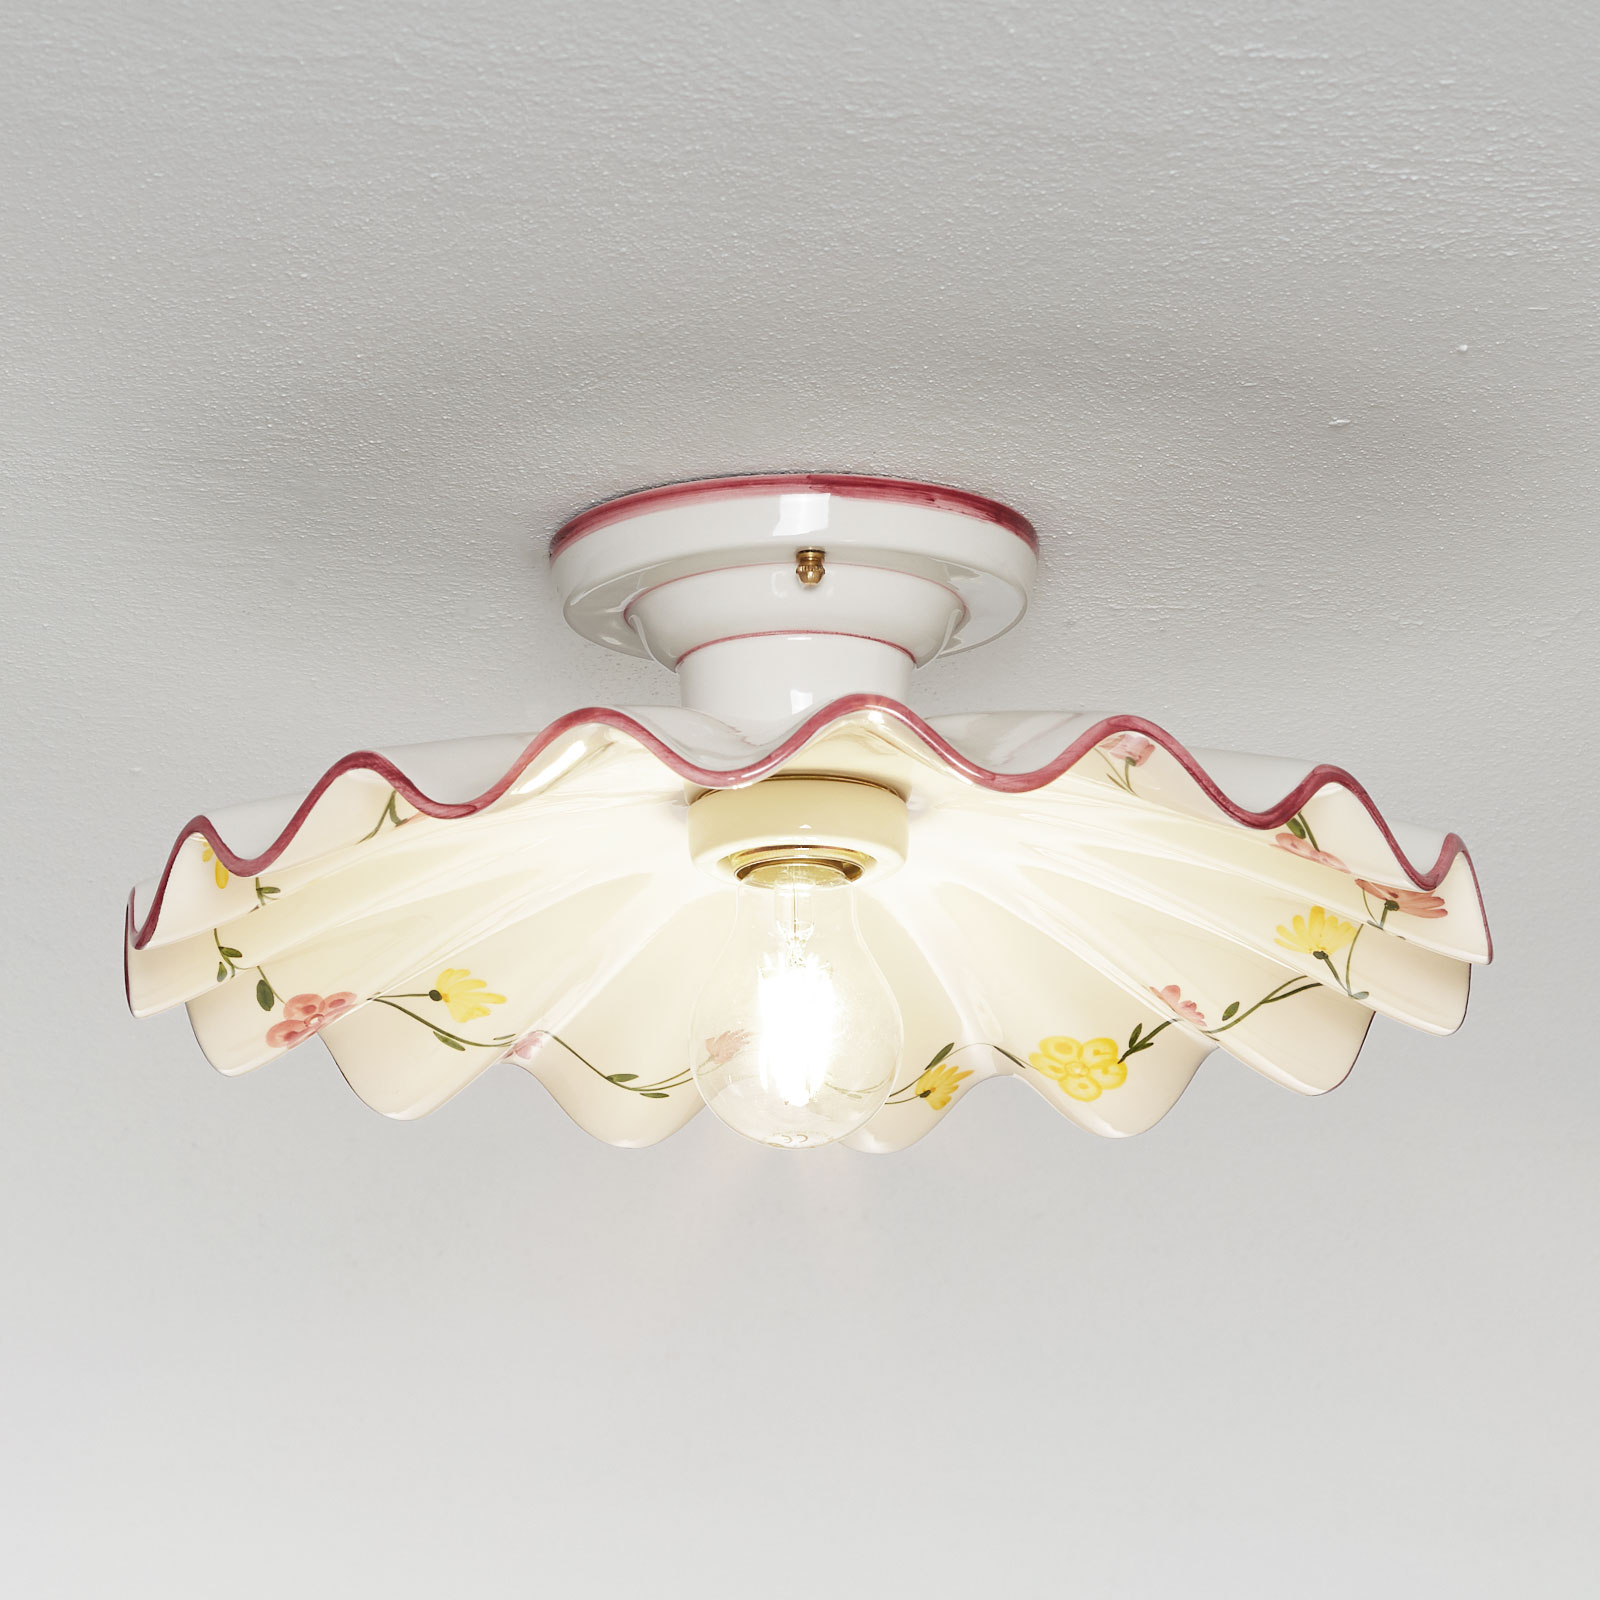 Semi-flusch ceramic ceiling light Ametista_3046030_1